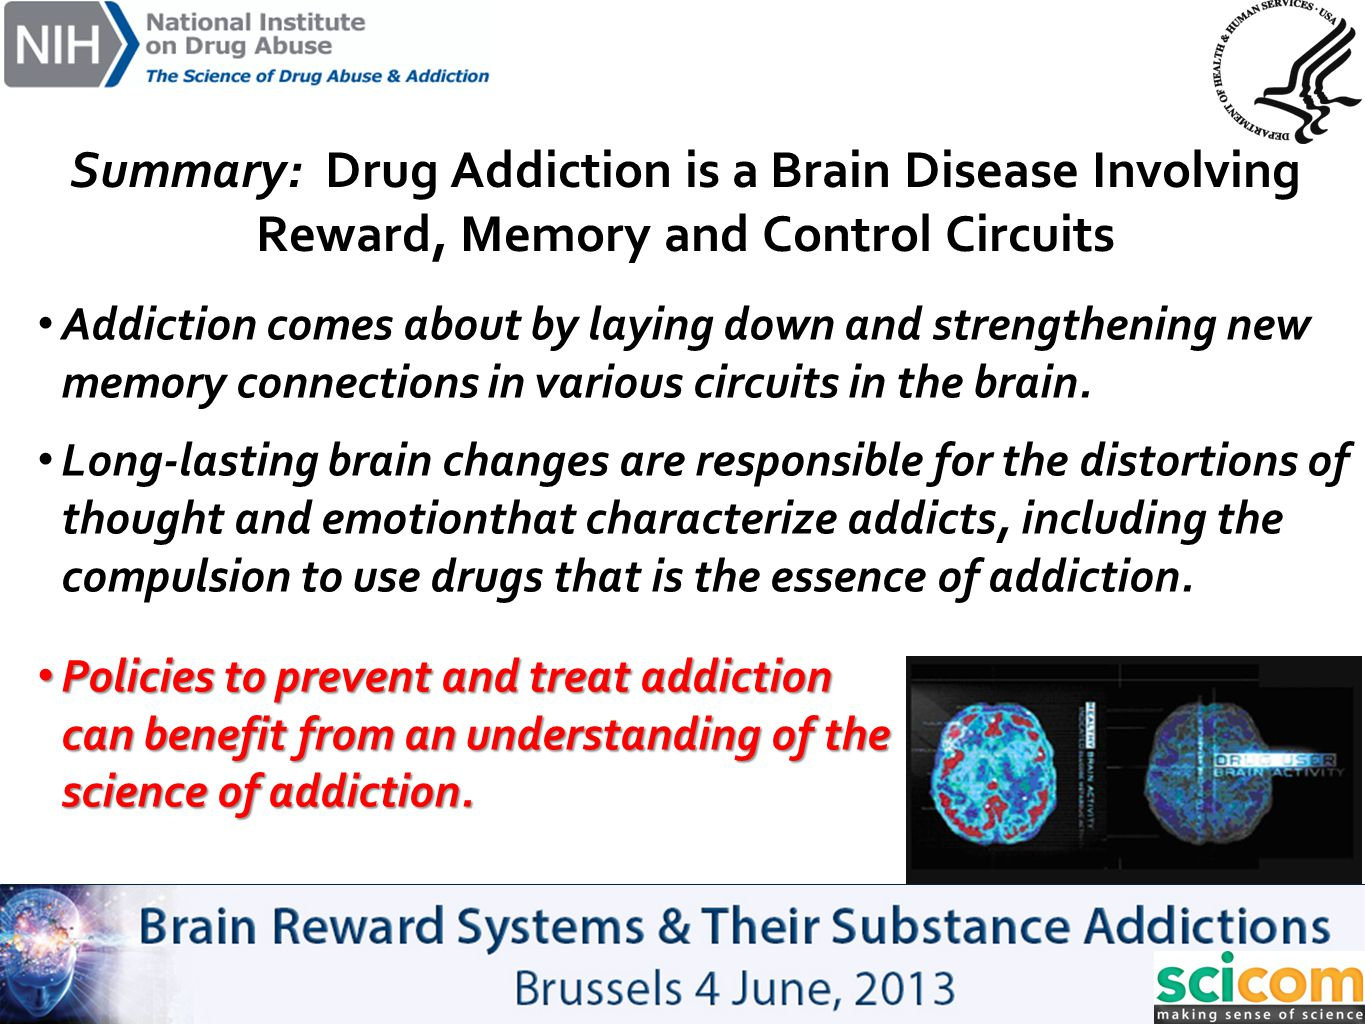 Summary: Drug Addiction is a Brain Disease Involving Reward, Memory and Control Circuits